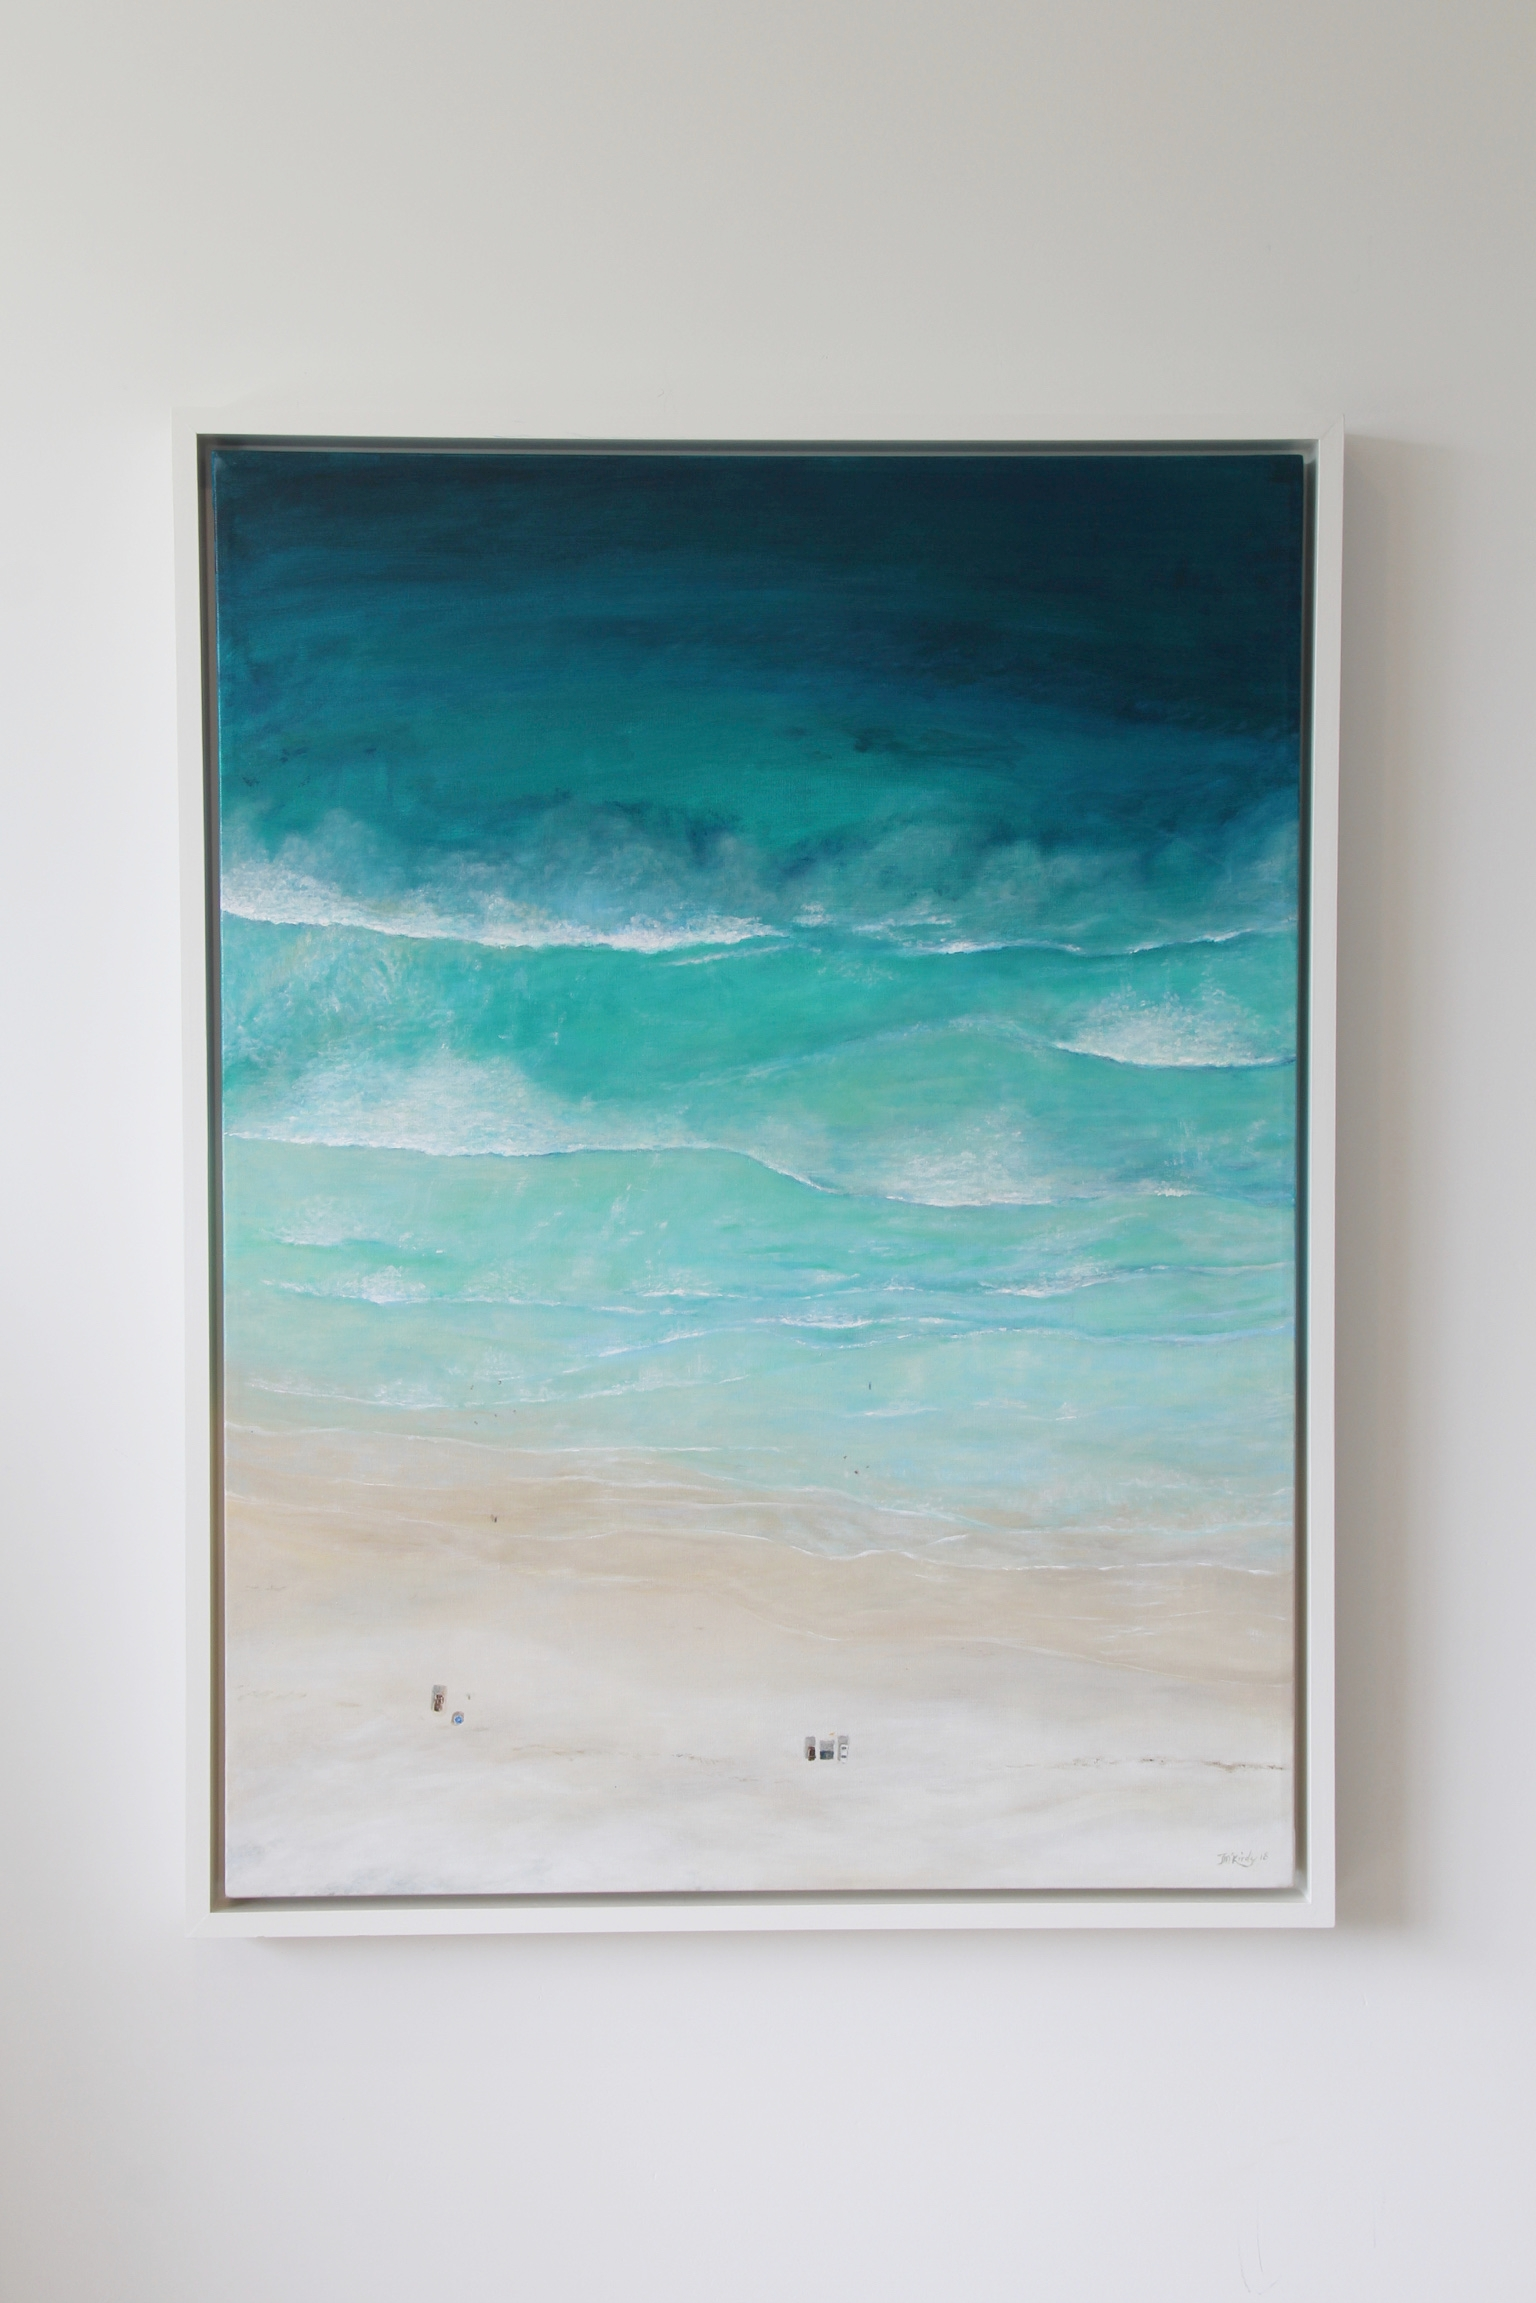 Beach Day at North Wedge - SOLDAcrylic on canvas and framed in a custom floating frame. 1075 x 820